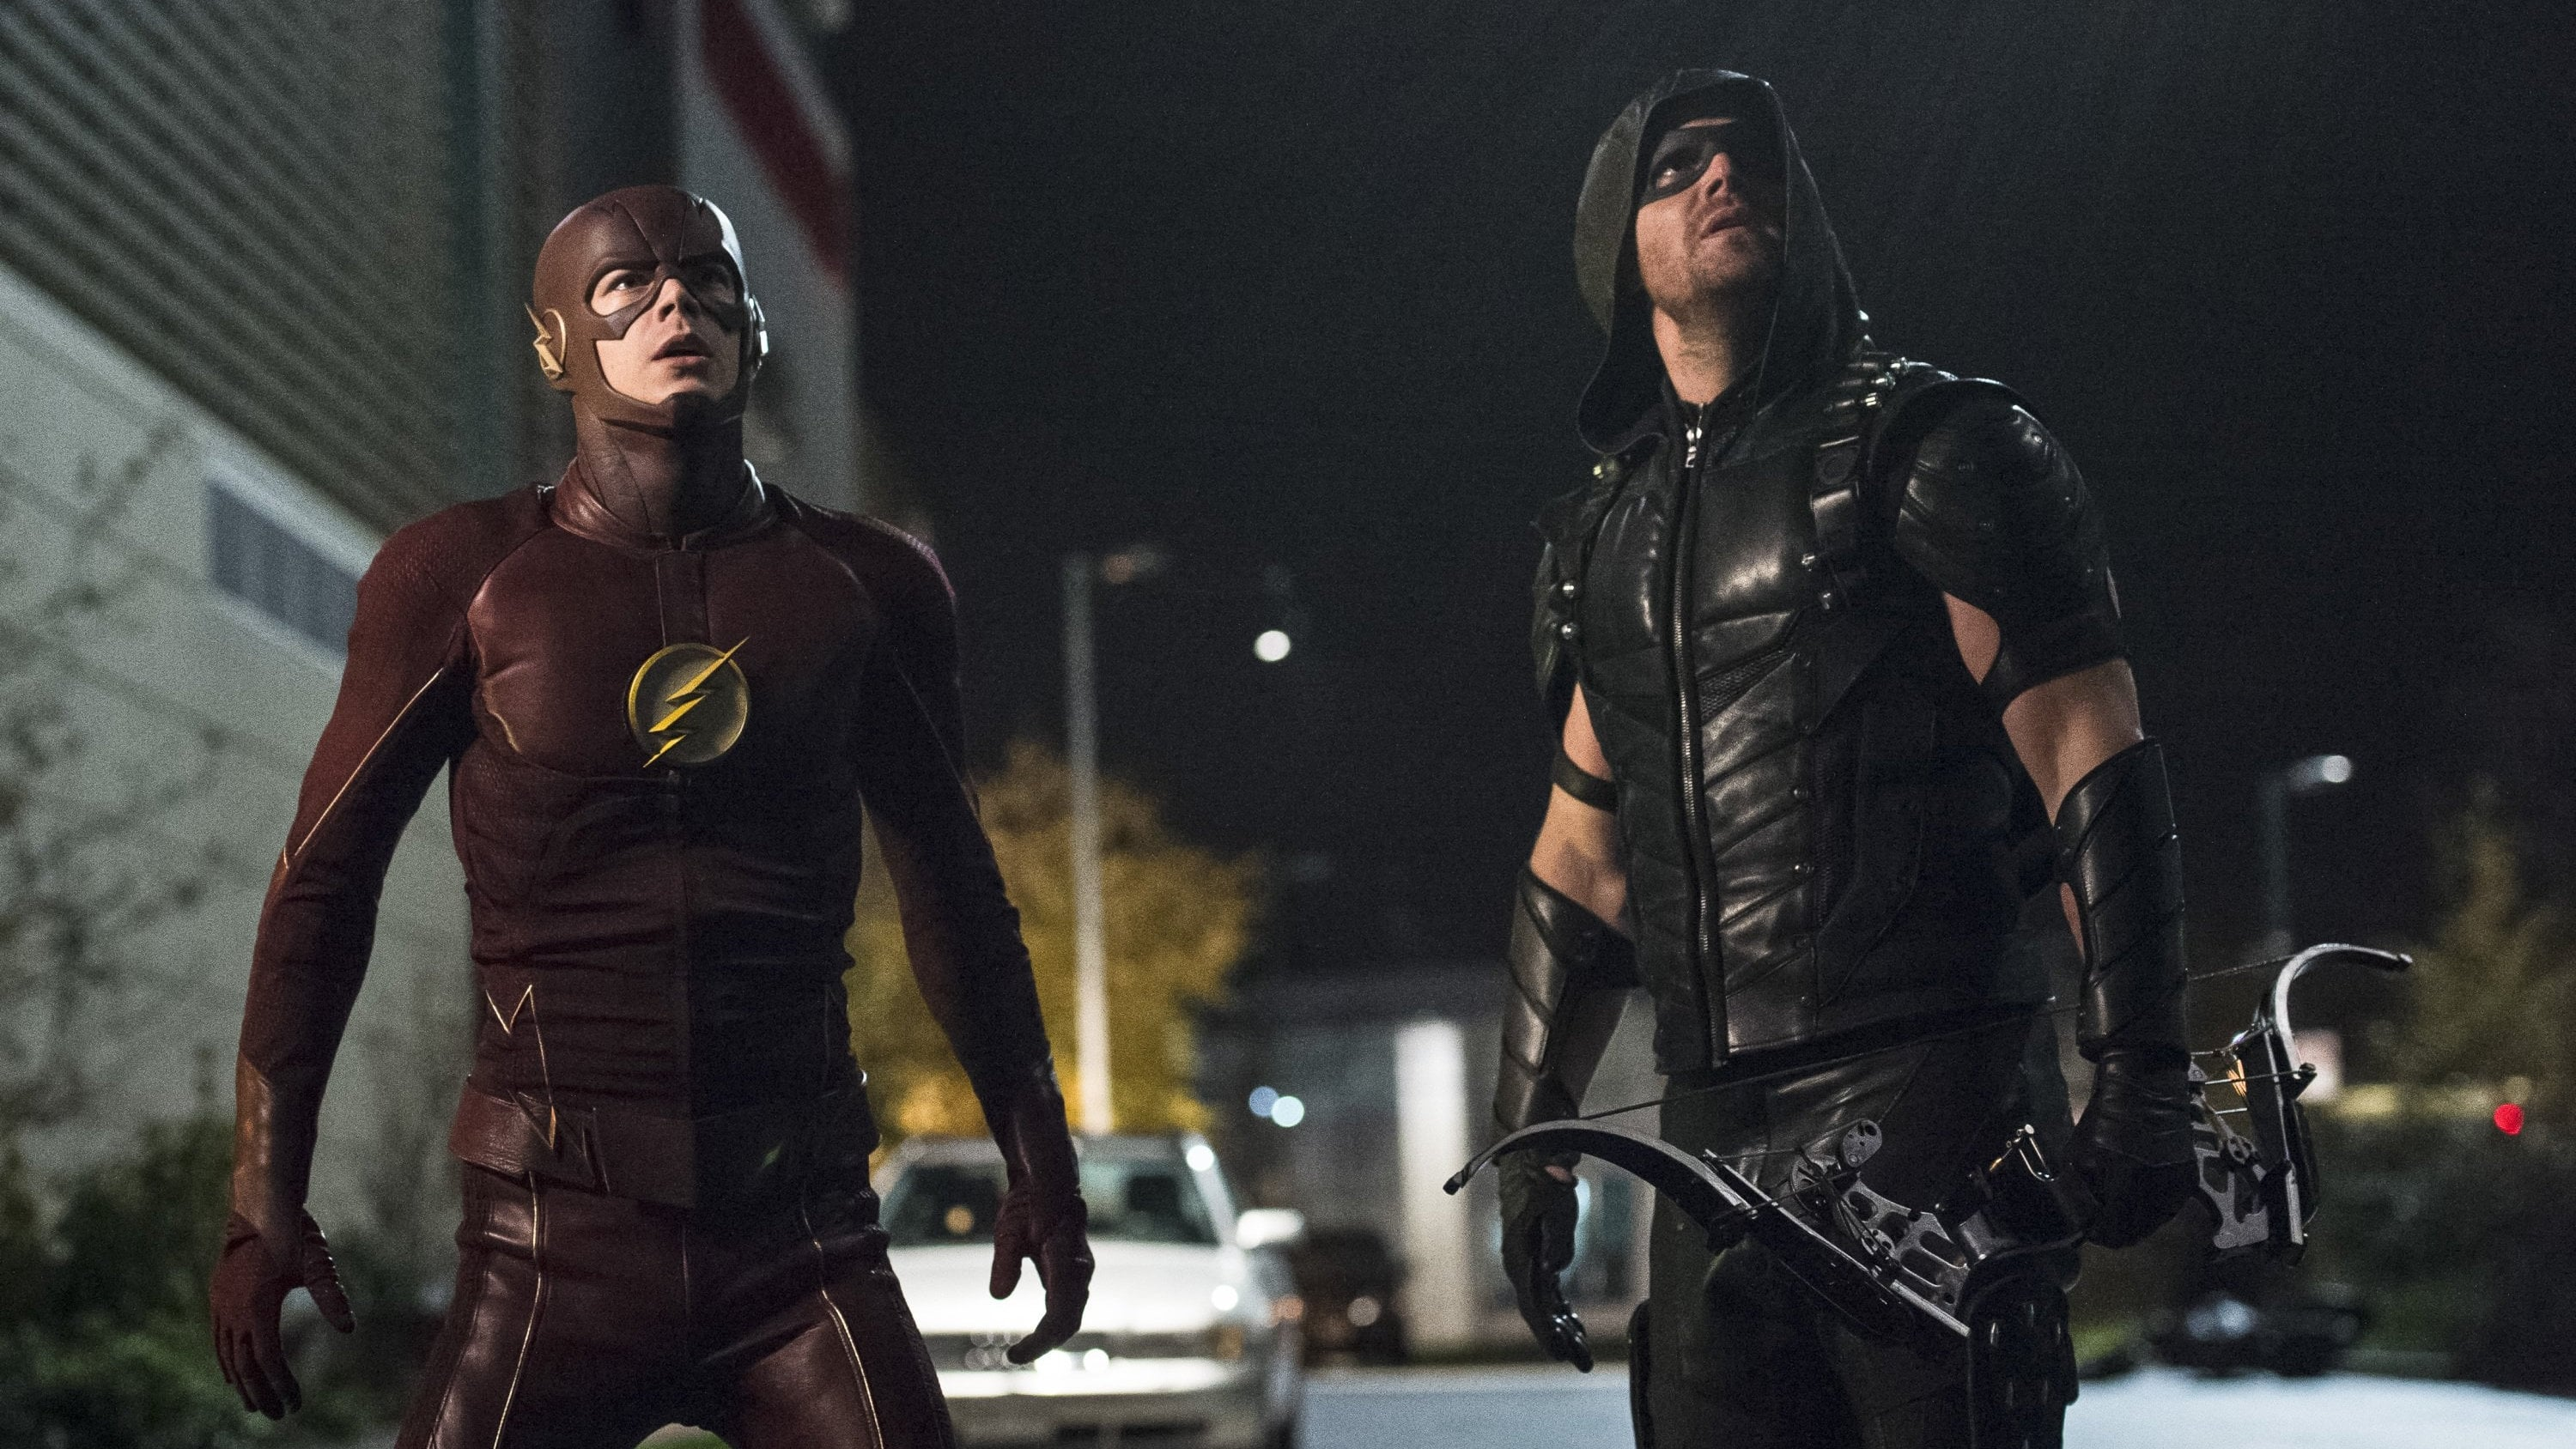 The Flash - Season 2 Episode 8 : Legends of Today (I)